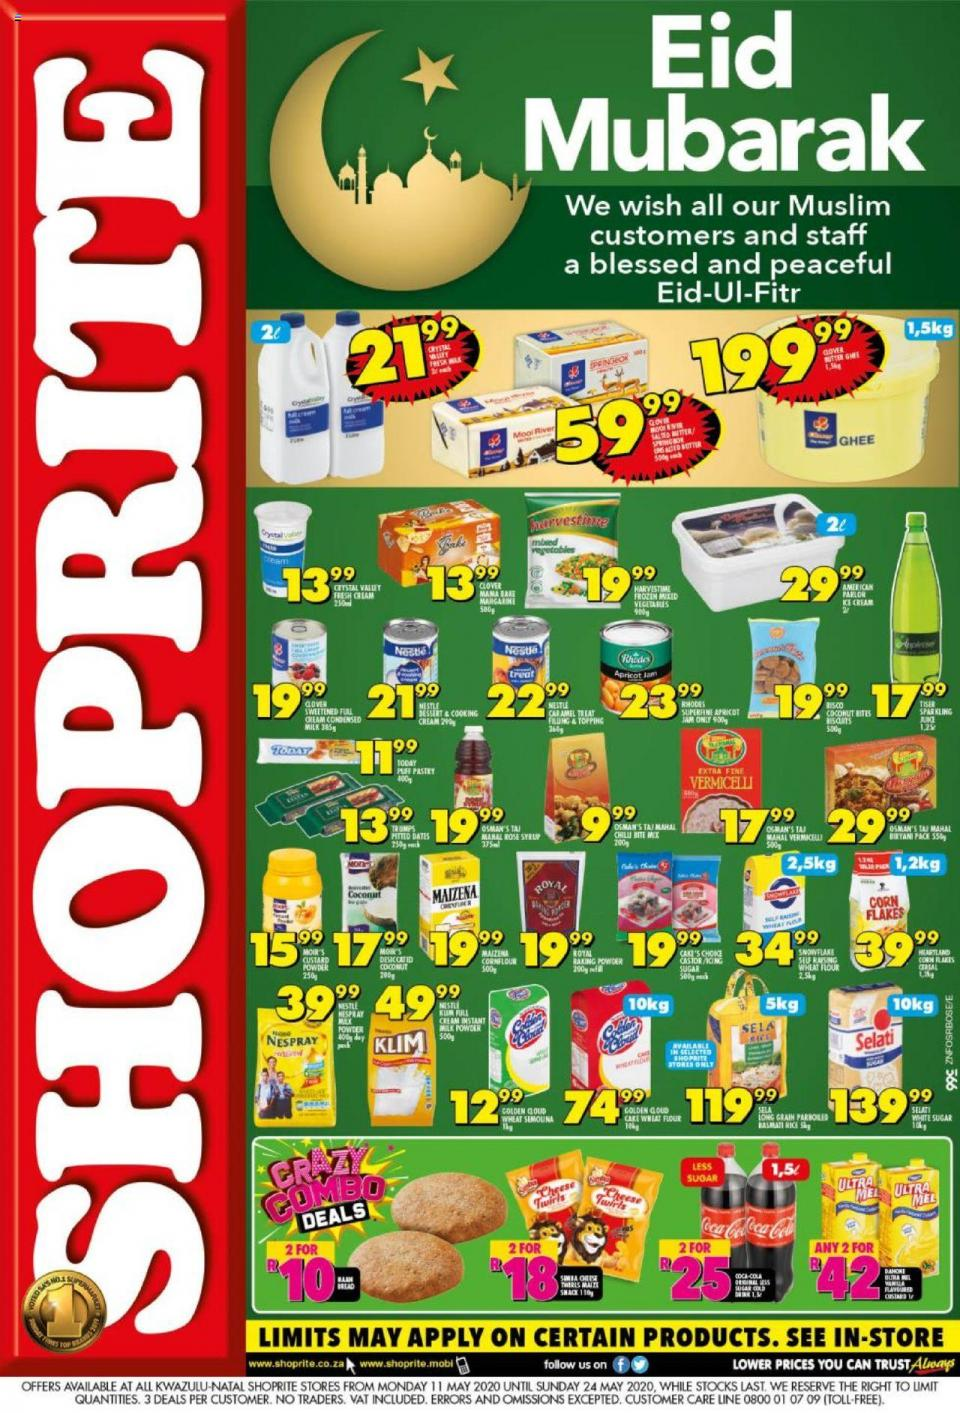 shoprite specials eid mubarak 11 may 2020